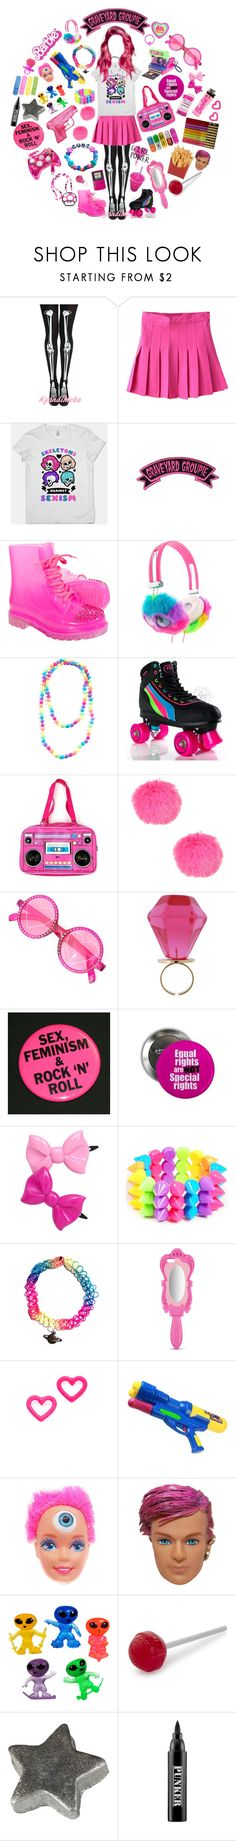 """""""Barbie is my dream job"""" by sw-13 ❤ liked on Polyvore featuring Kreepsville 666, Chicwish, GET LOST, Polaroid, Moschino, Marc by Marc Jacobs, Fred, KING and Ardency Inn"""